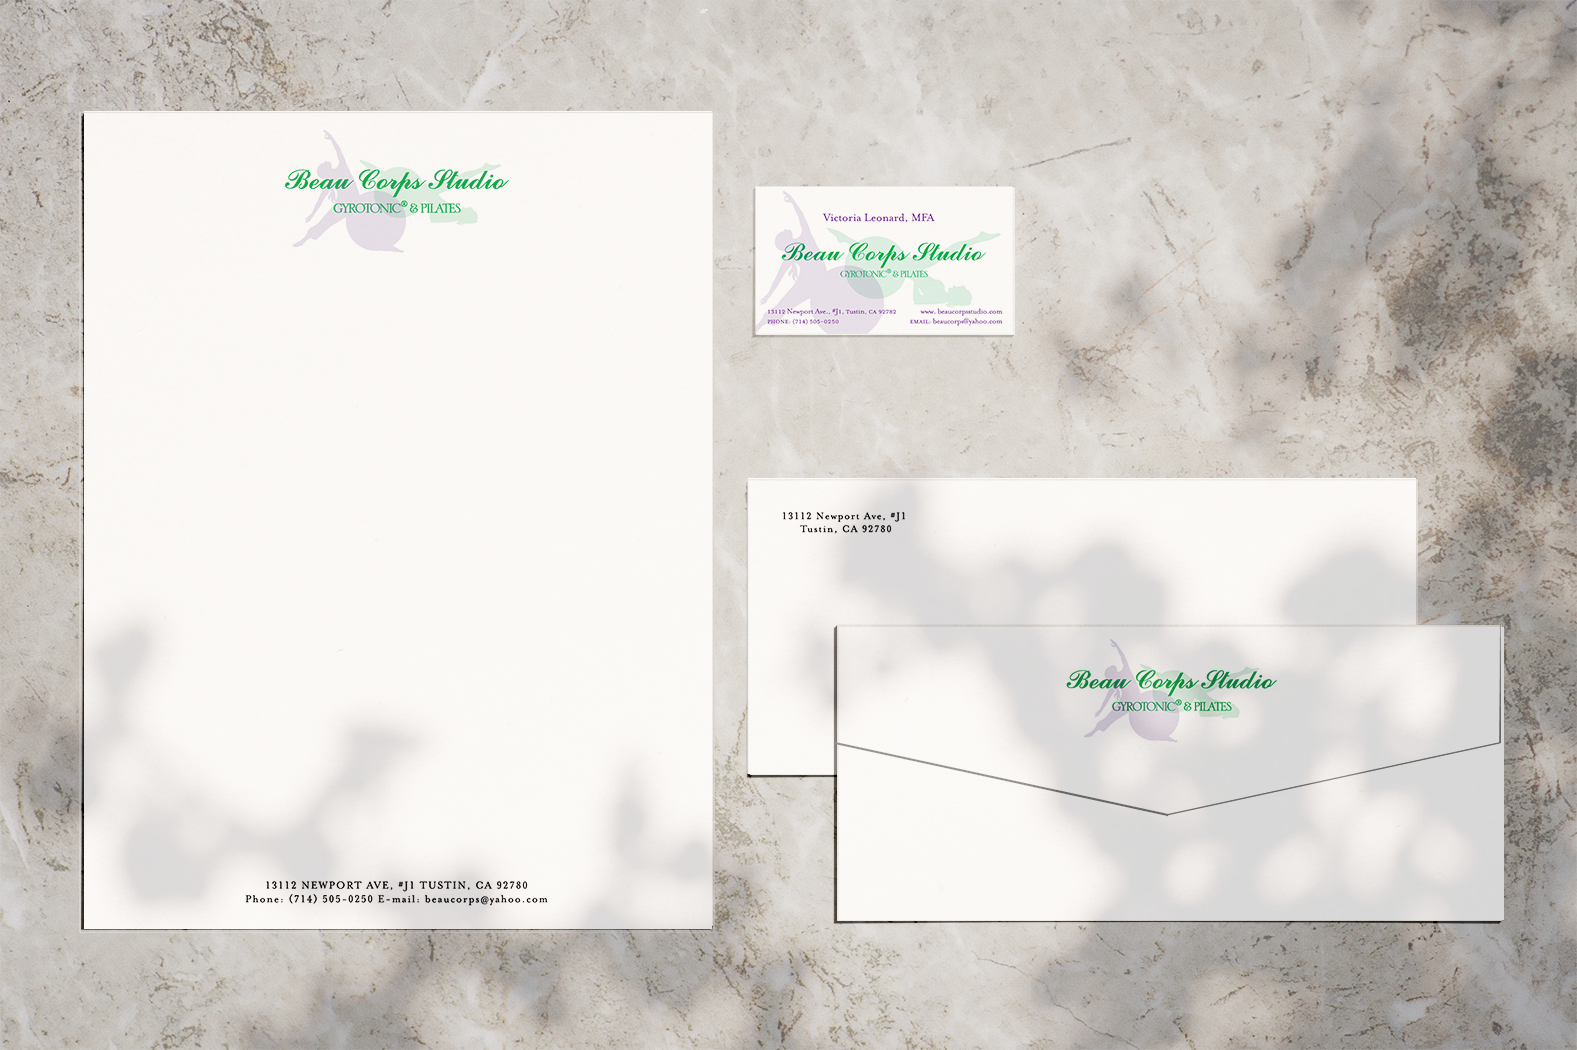 Letterhead, Envelopes and Business Cards